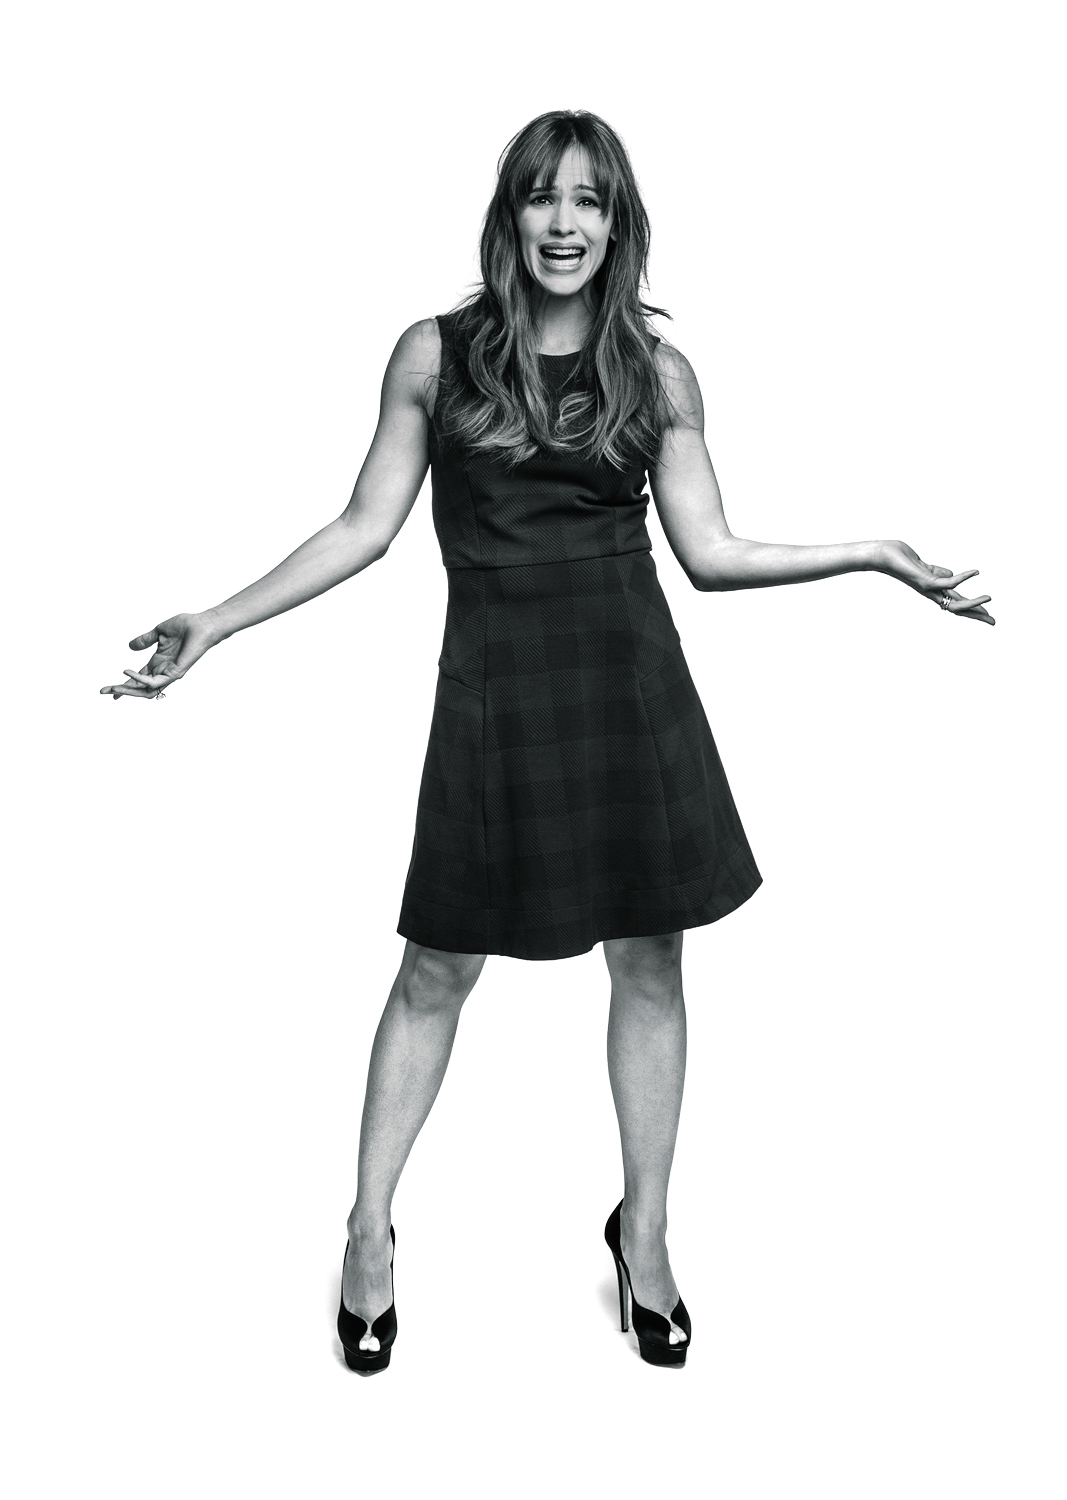 Actress Jennifer Garner Photographed at the Four Seasons Hotel in NYC, October 1, 2014.